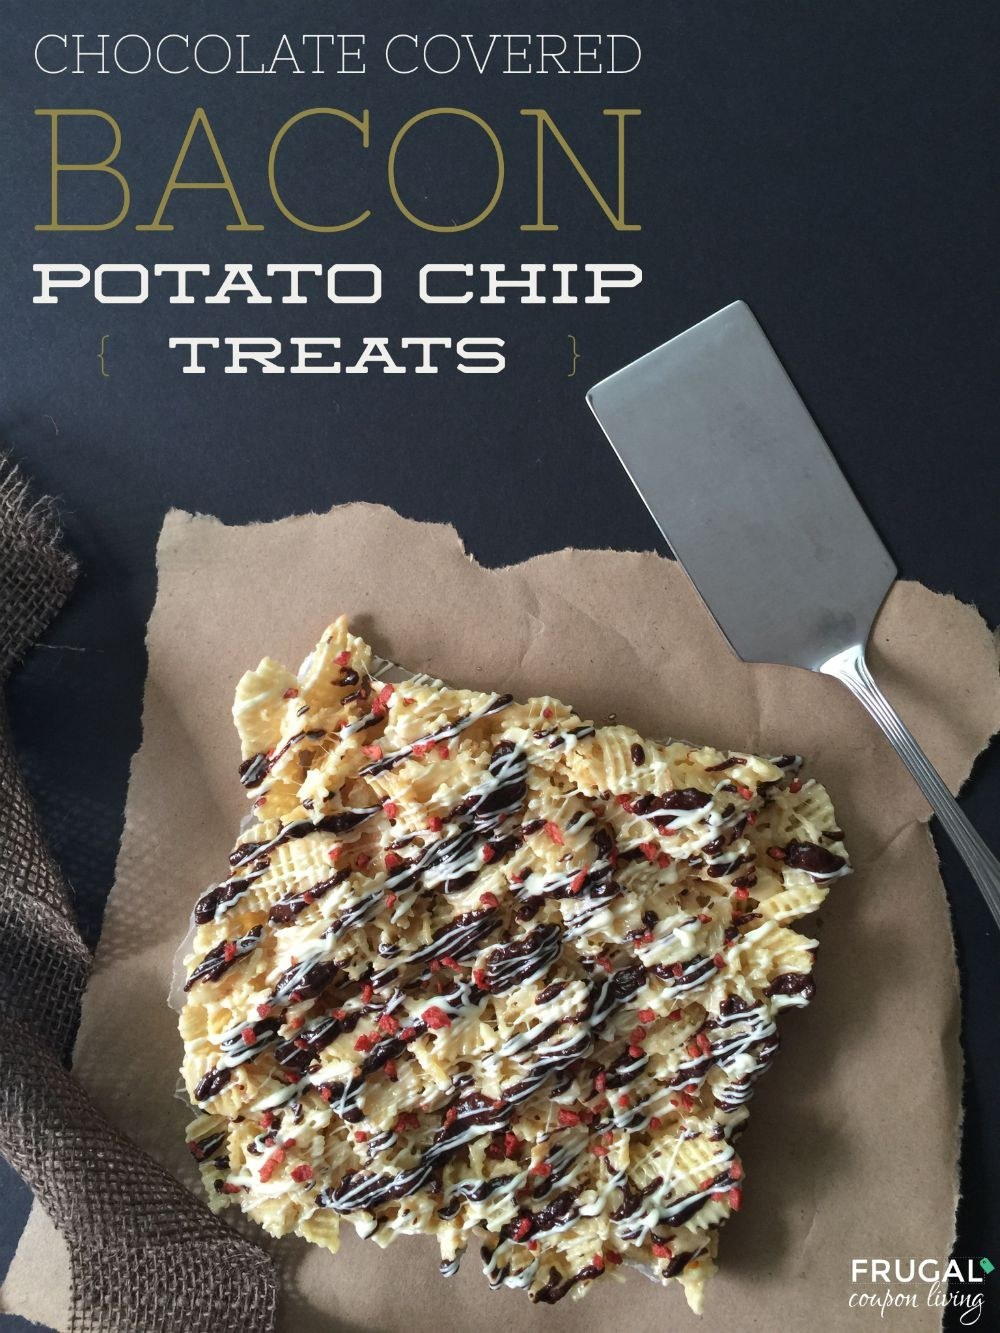 17 Reminders That Chocolate Potato Chips Is The Best